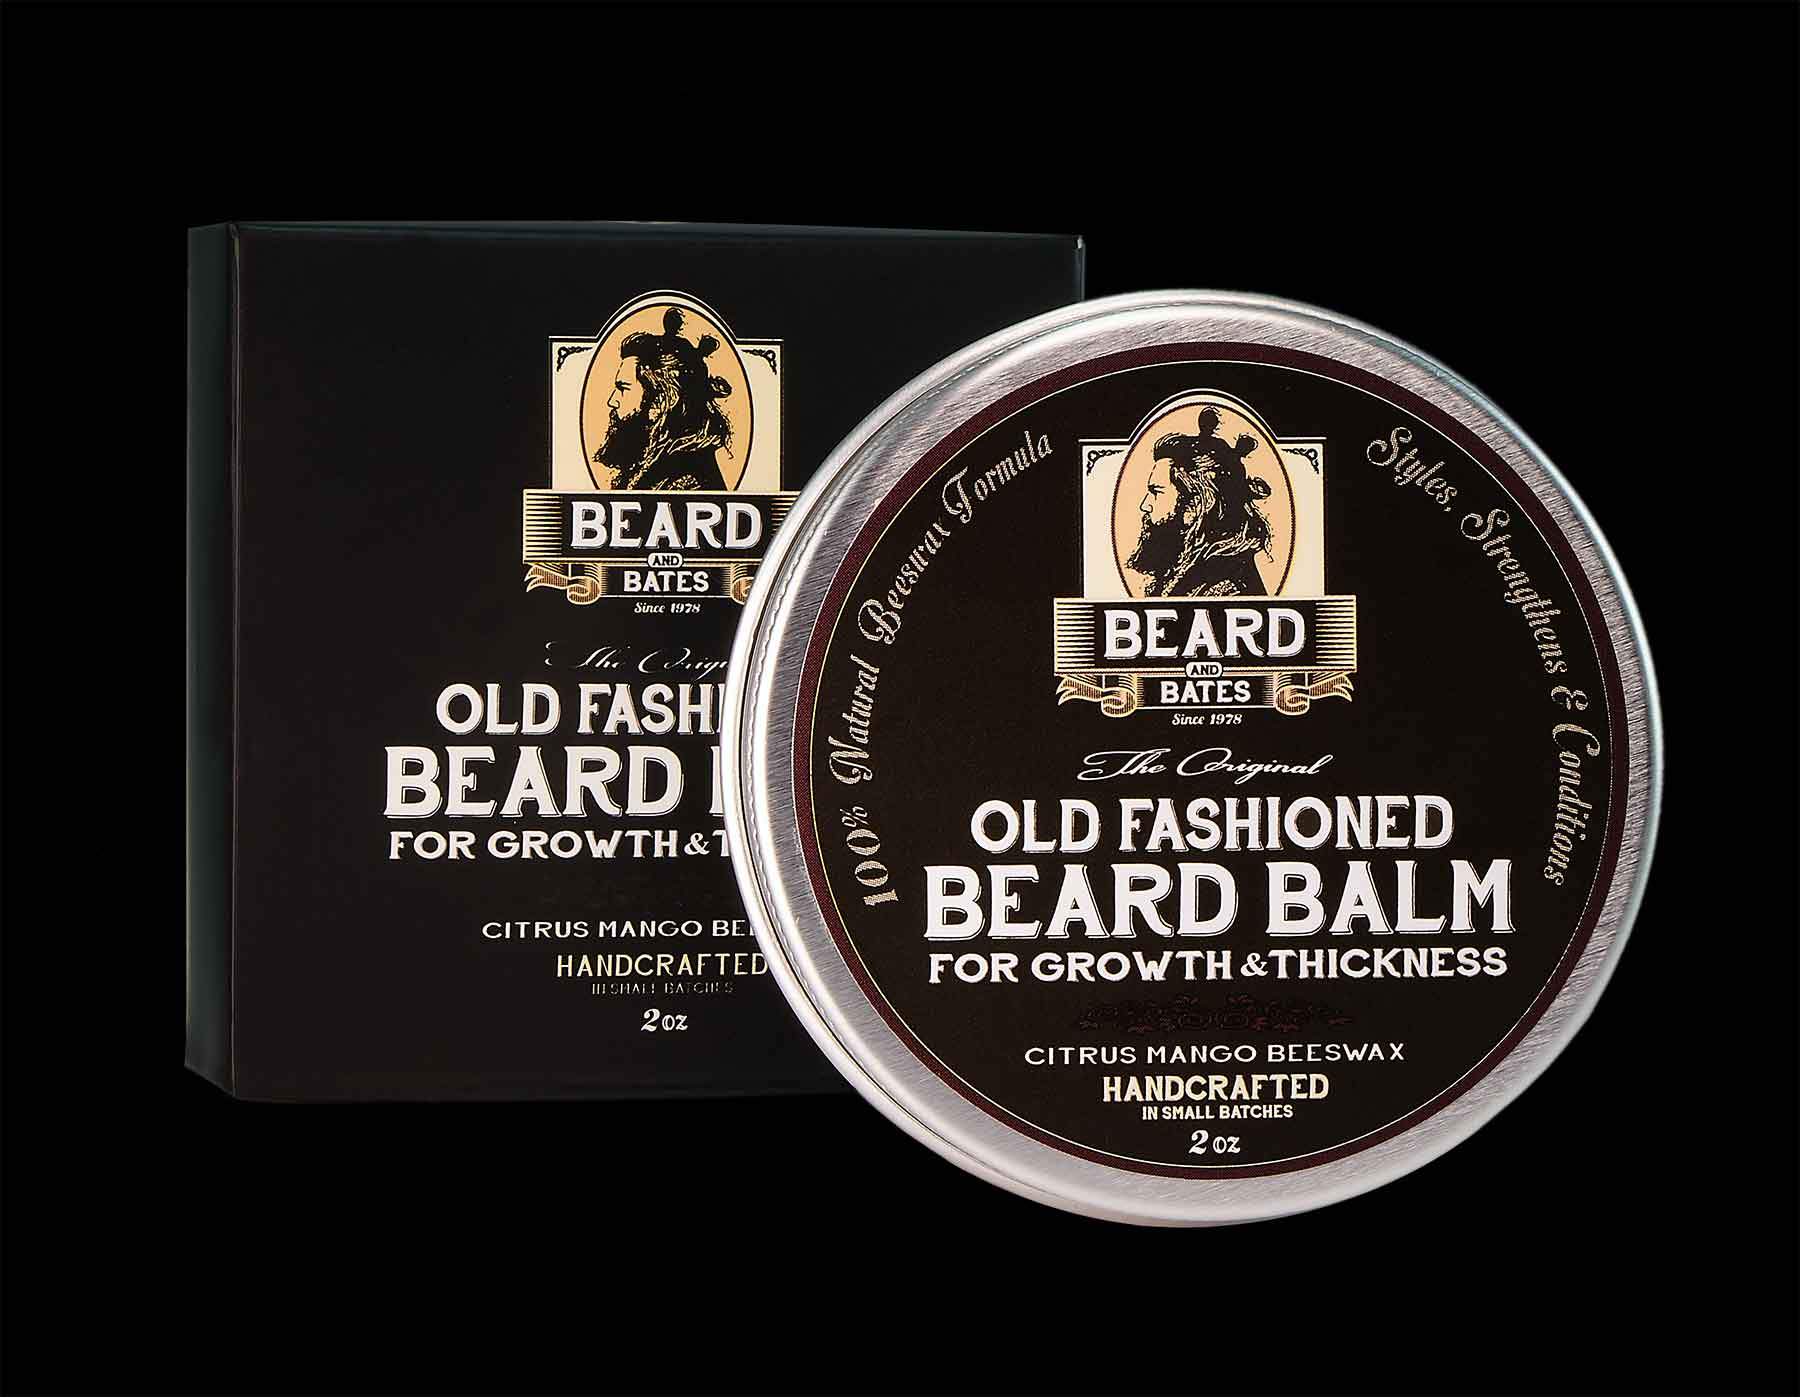 beard balm growth thickness oil old fashioned